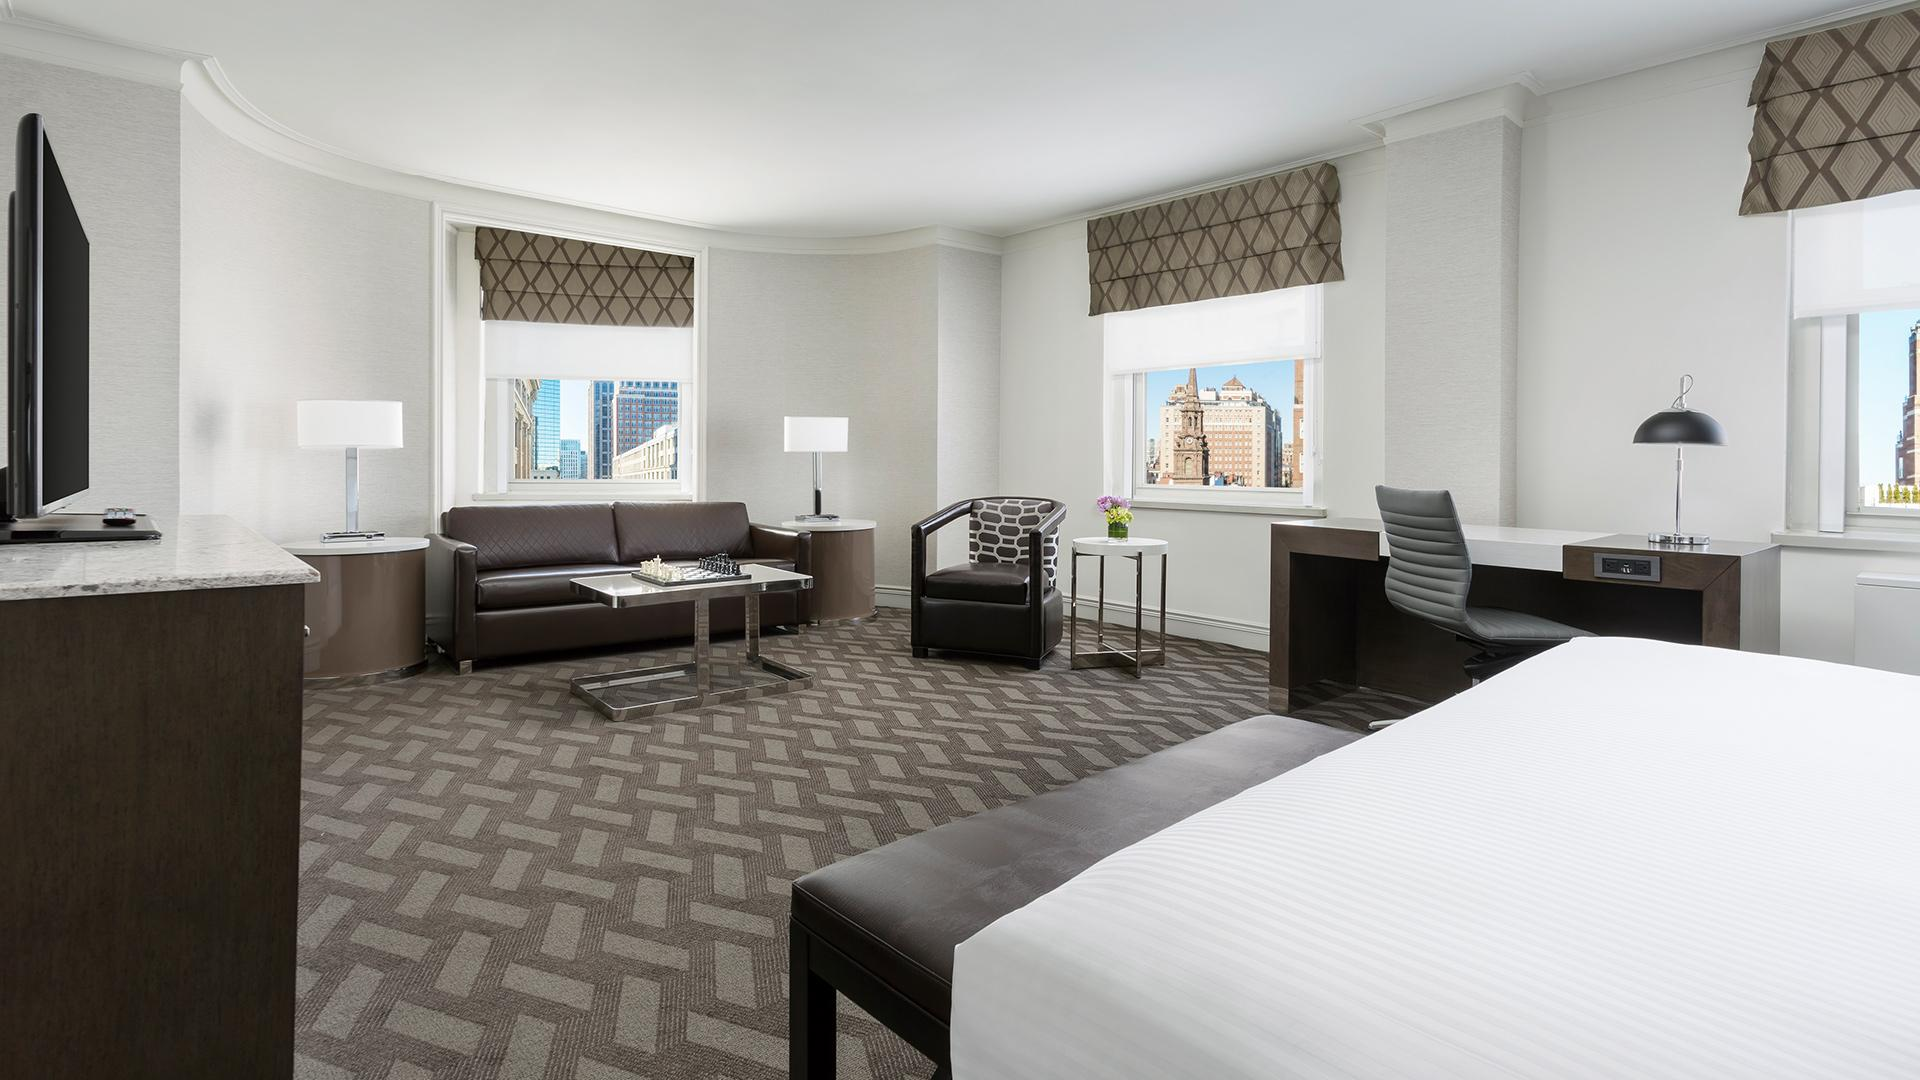 Junior Suite image 1 at Boston Park Plaza by Suffolk County, Massachusetts, United States